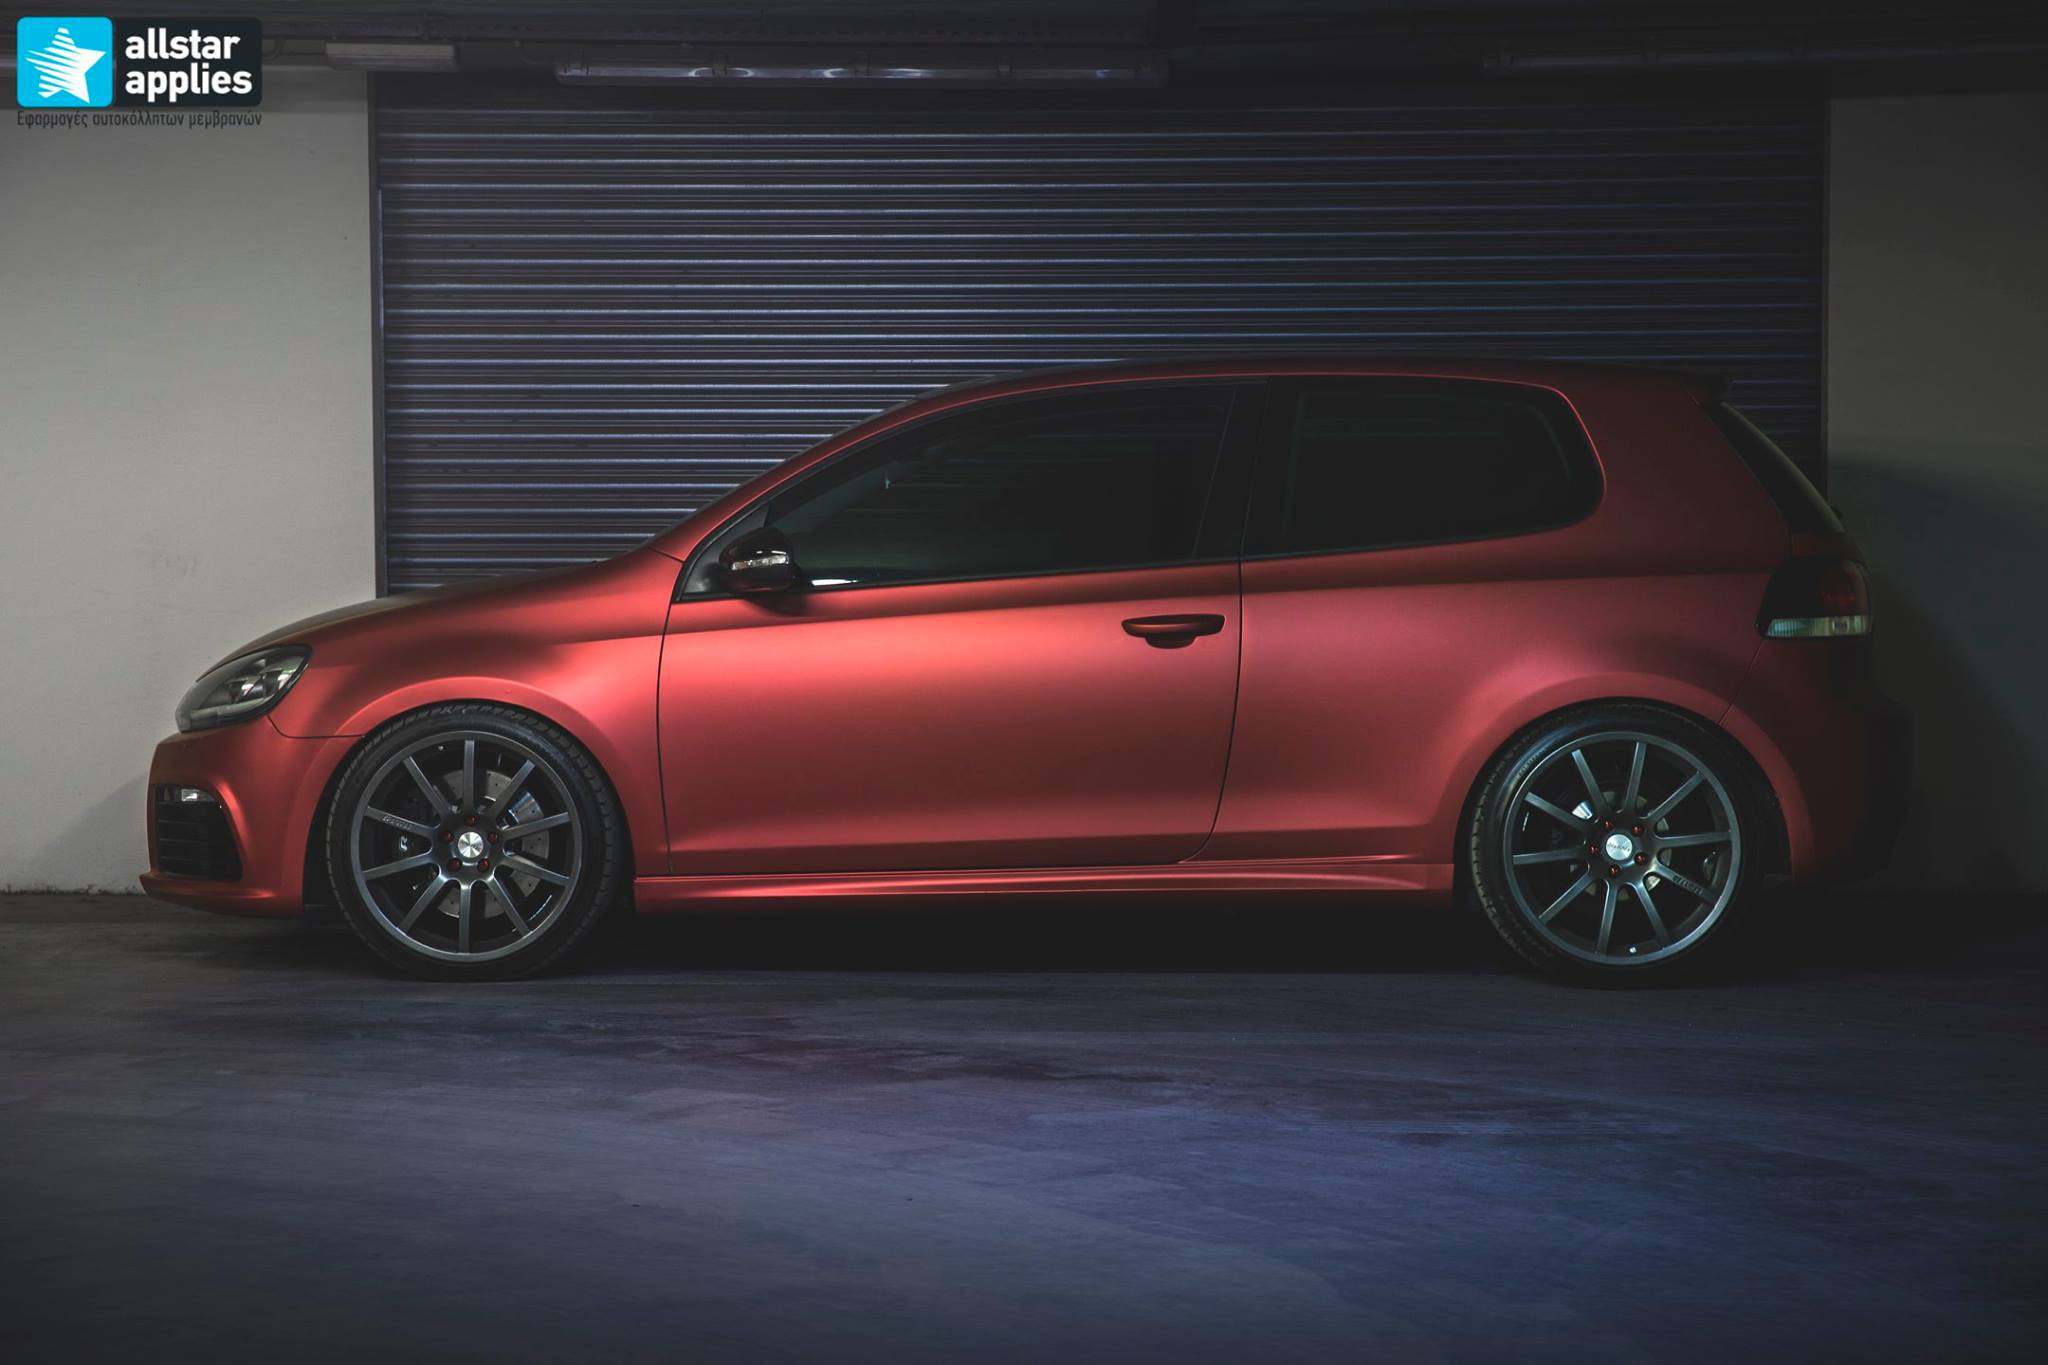 VW Golf 6 - Anodized Red (6)